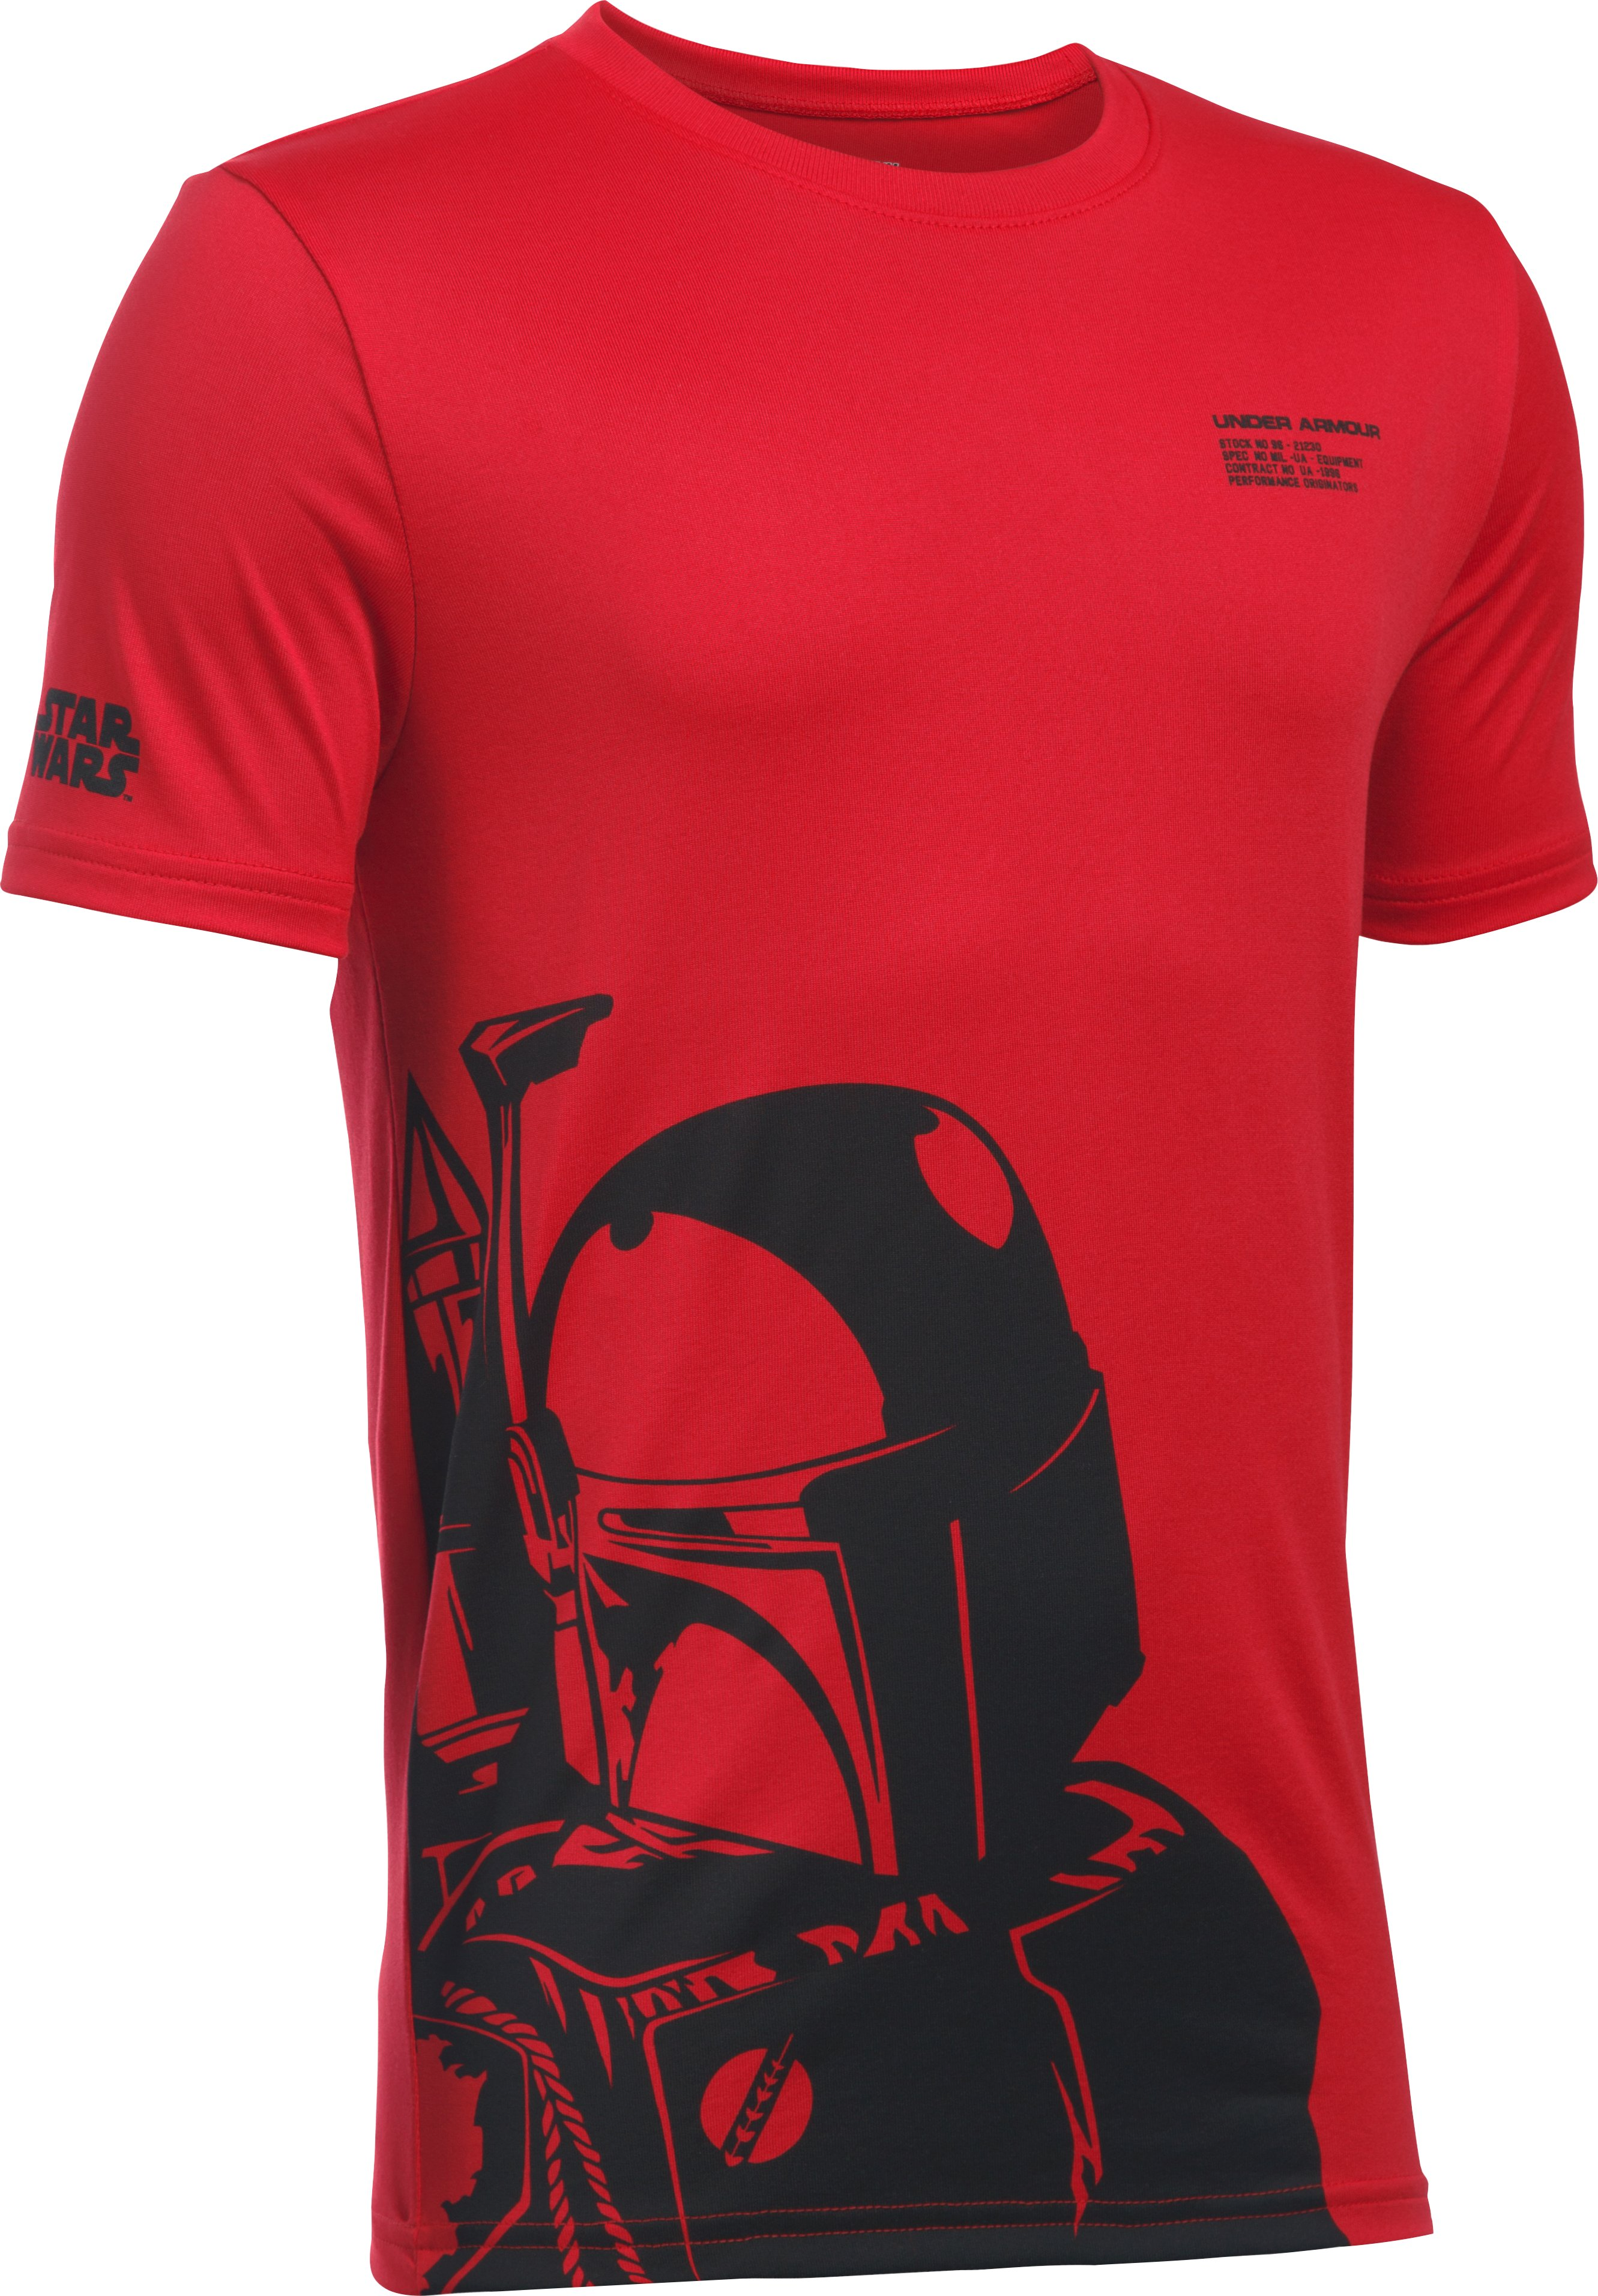 Boys' UA Star Wars Boba Fett T-Shirt, Red